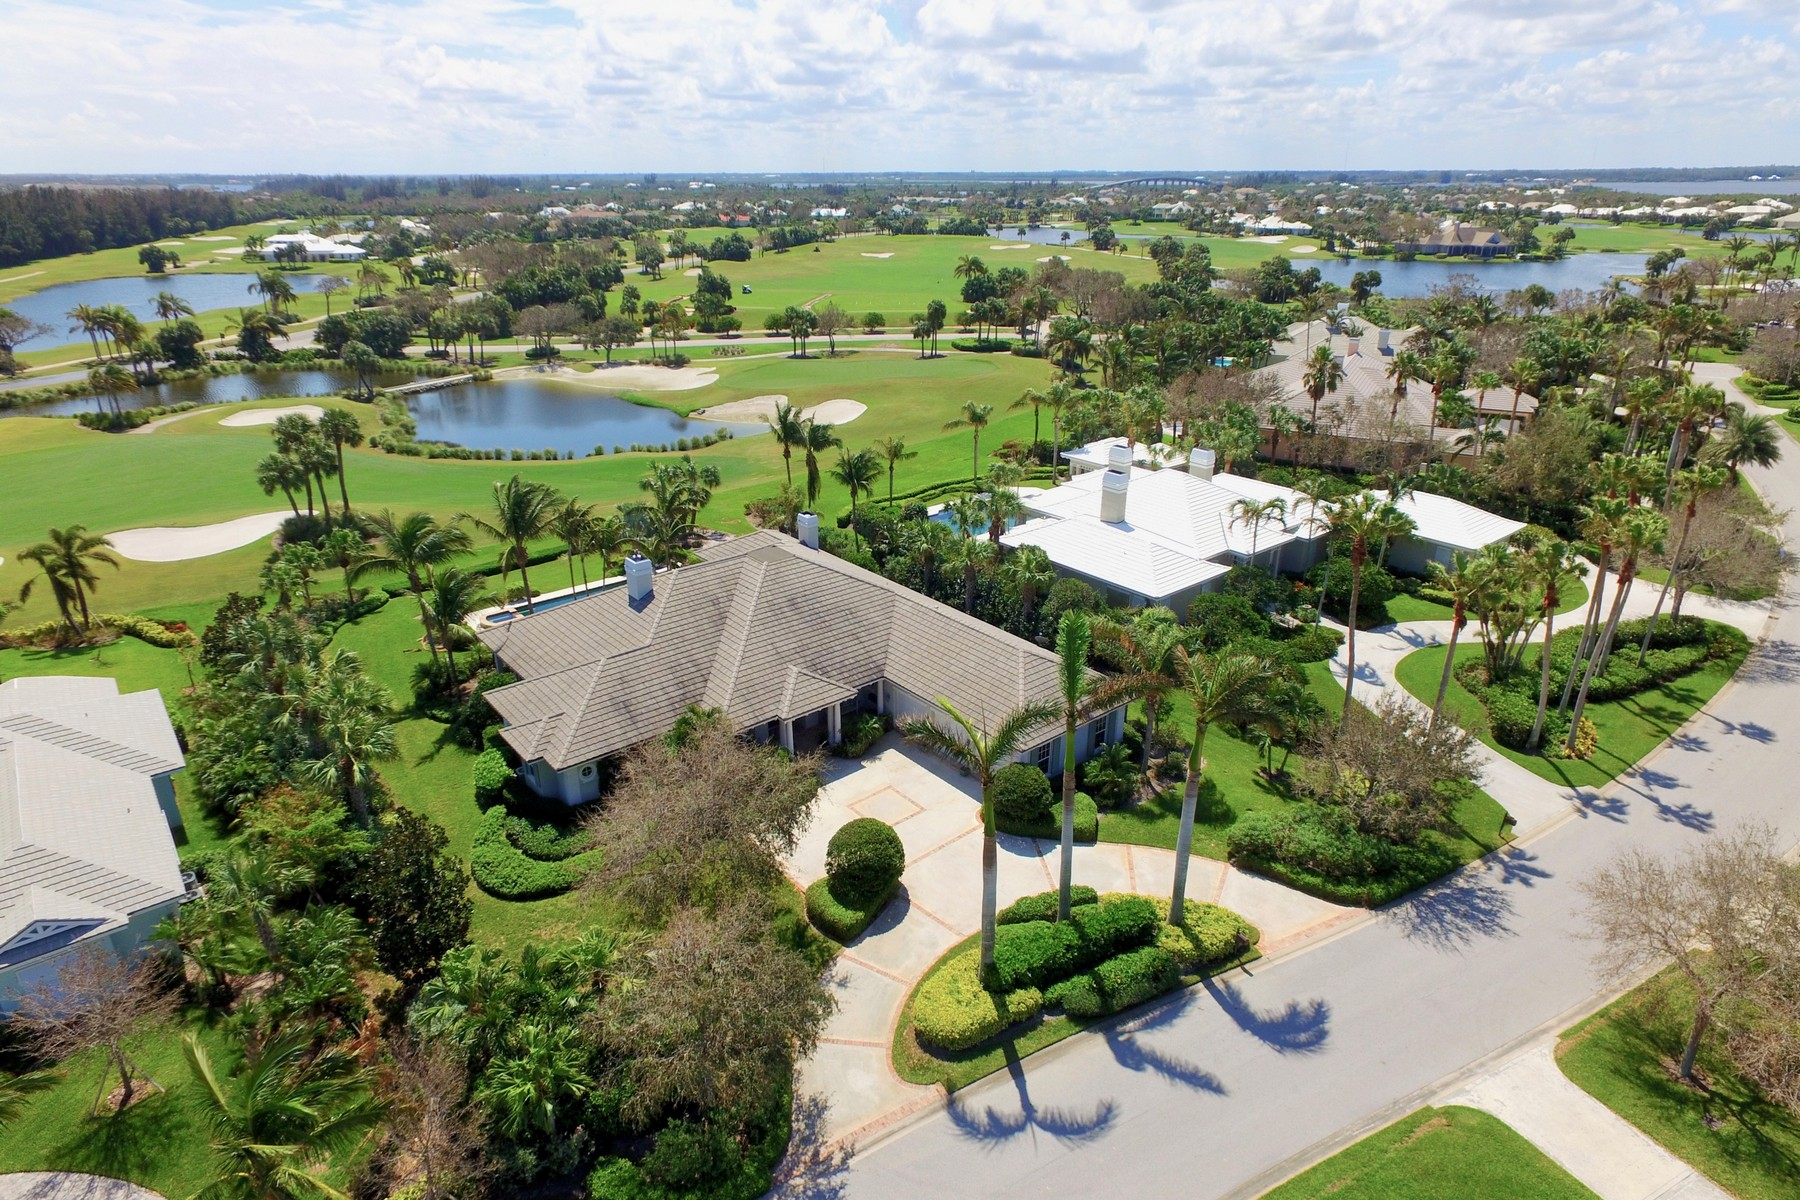 واحد منزل الأسرة للـ Sale في Lakefront Home with Endless Golf Views 130 Seaspray Lane, Vero Beach, Florida, 32963 United States